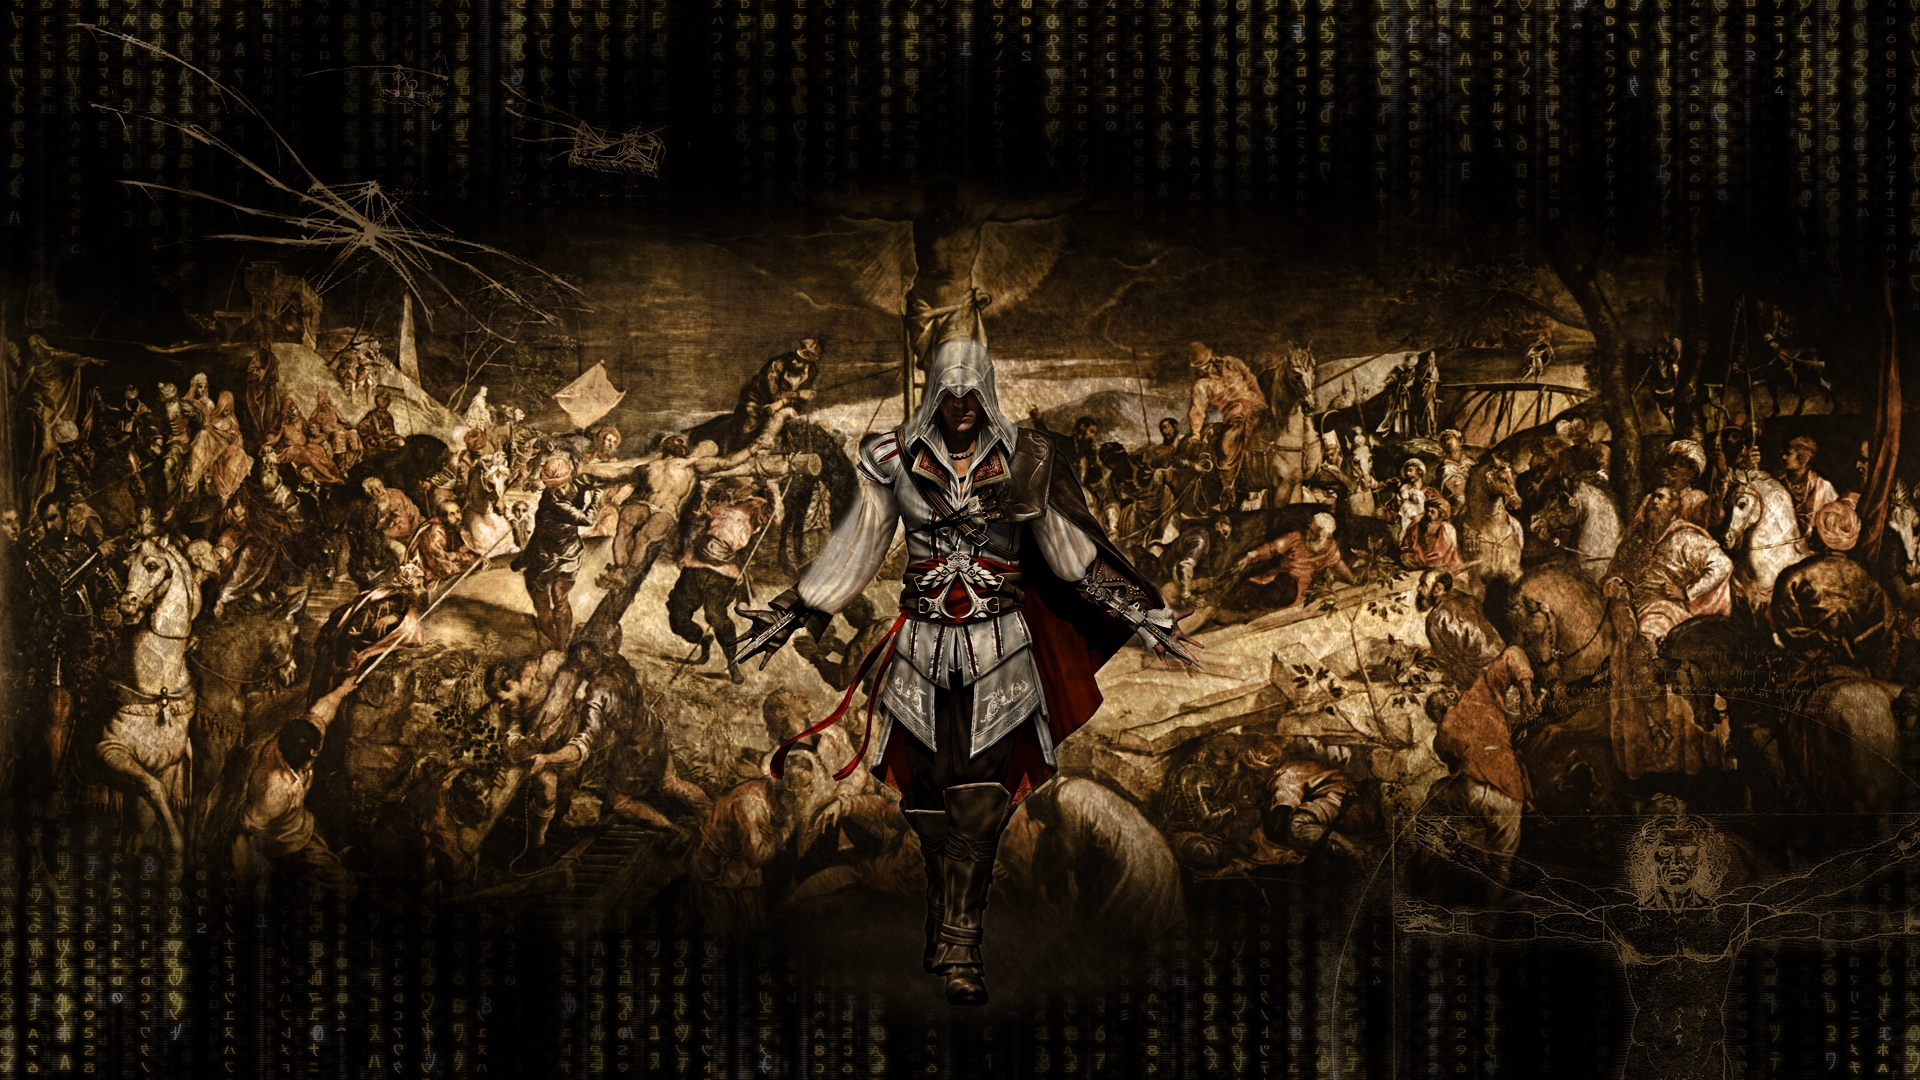 Download Wallpaper 1920x1080 Assassins Creed Graphics Background